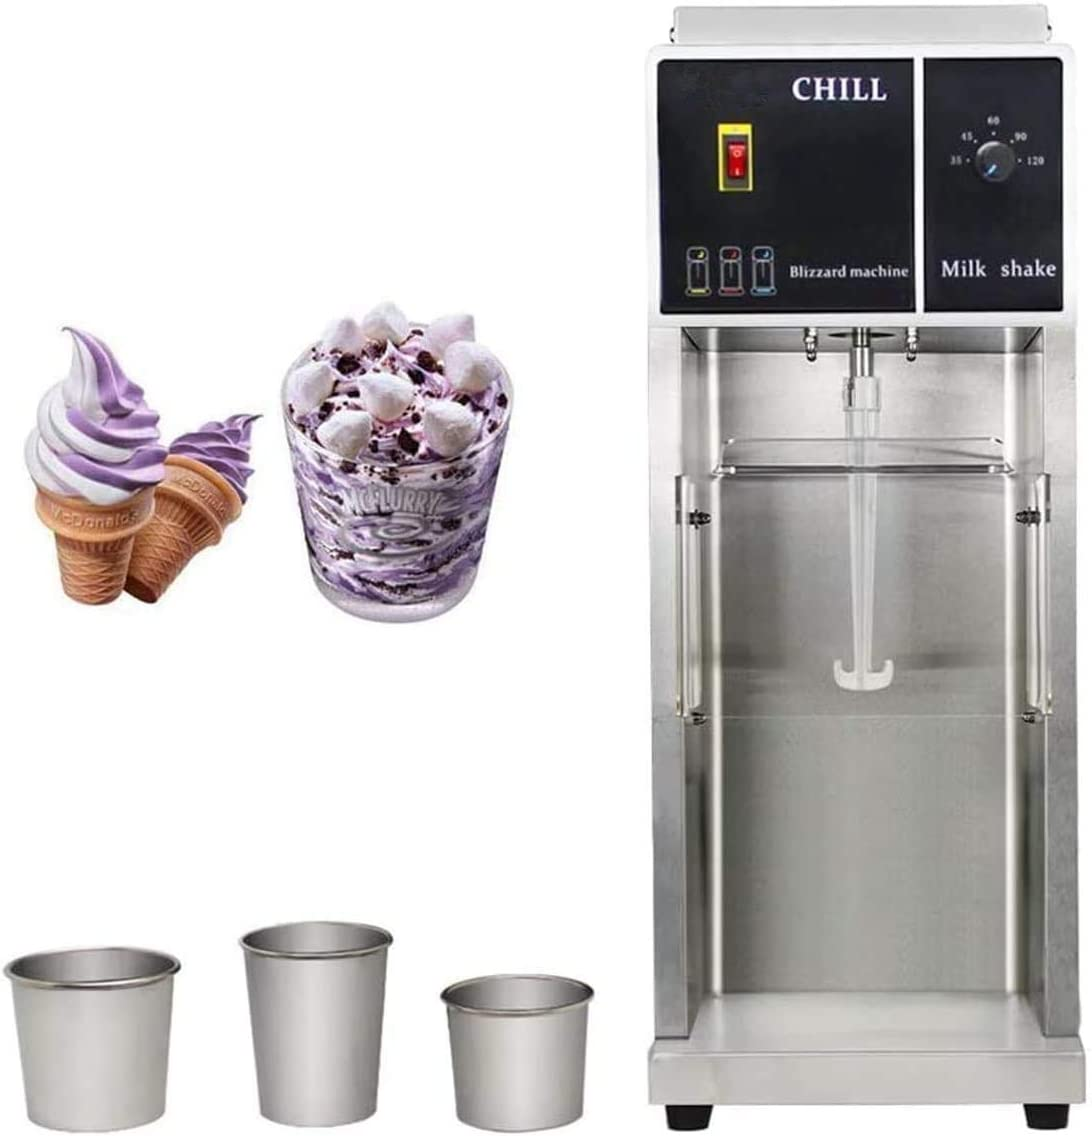 Commercial Chill Drink Mixer Ice Cream Maker Machine Blender 110-120v with 3 of Hand Cups